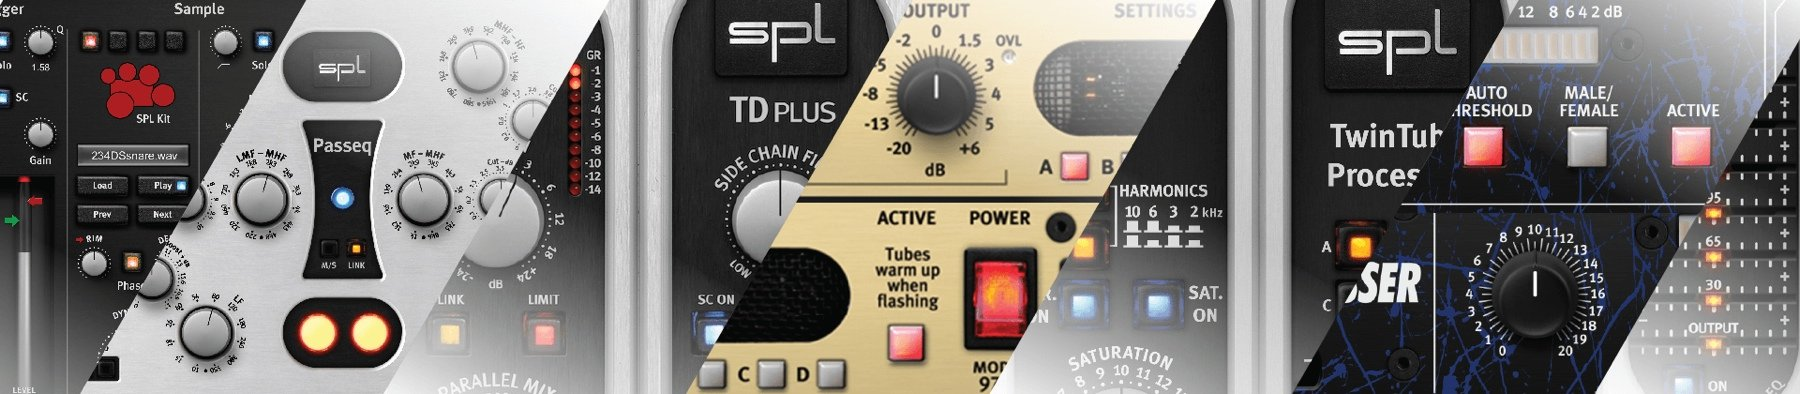 SPL 100% SPL Bundle V2 1 | Sweetwater